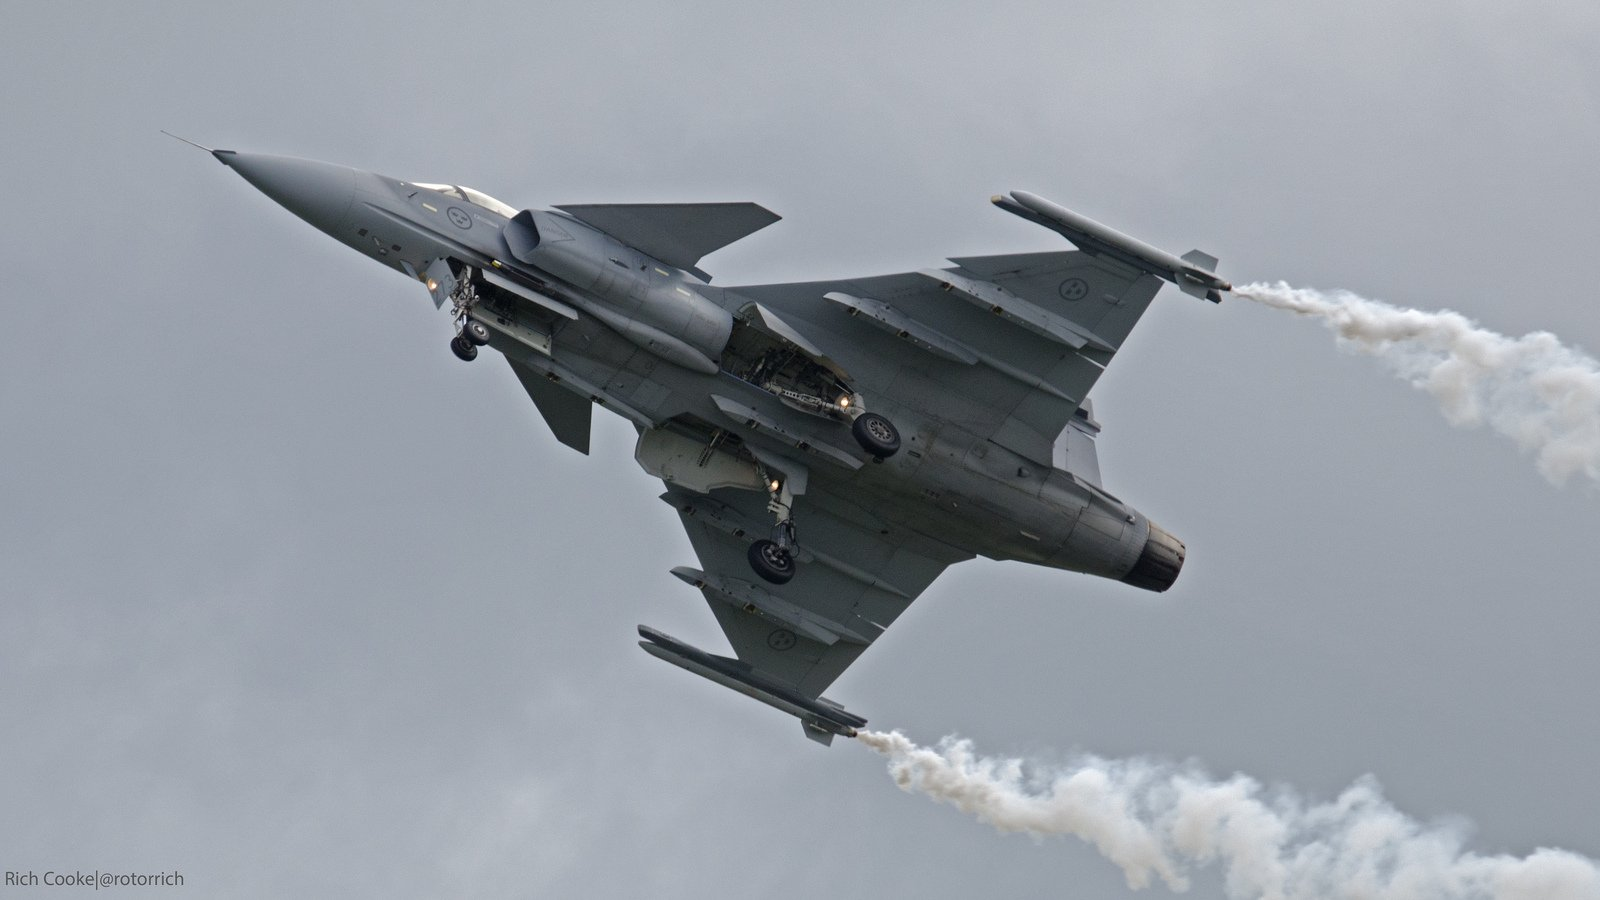 Air aircraft Fighter force gripen jas 39 jet Military saab swedish